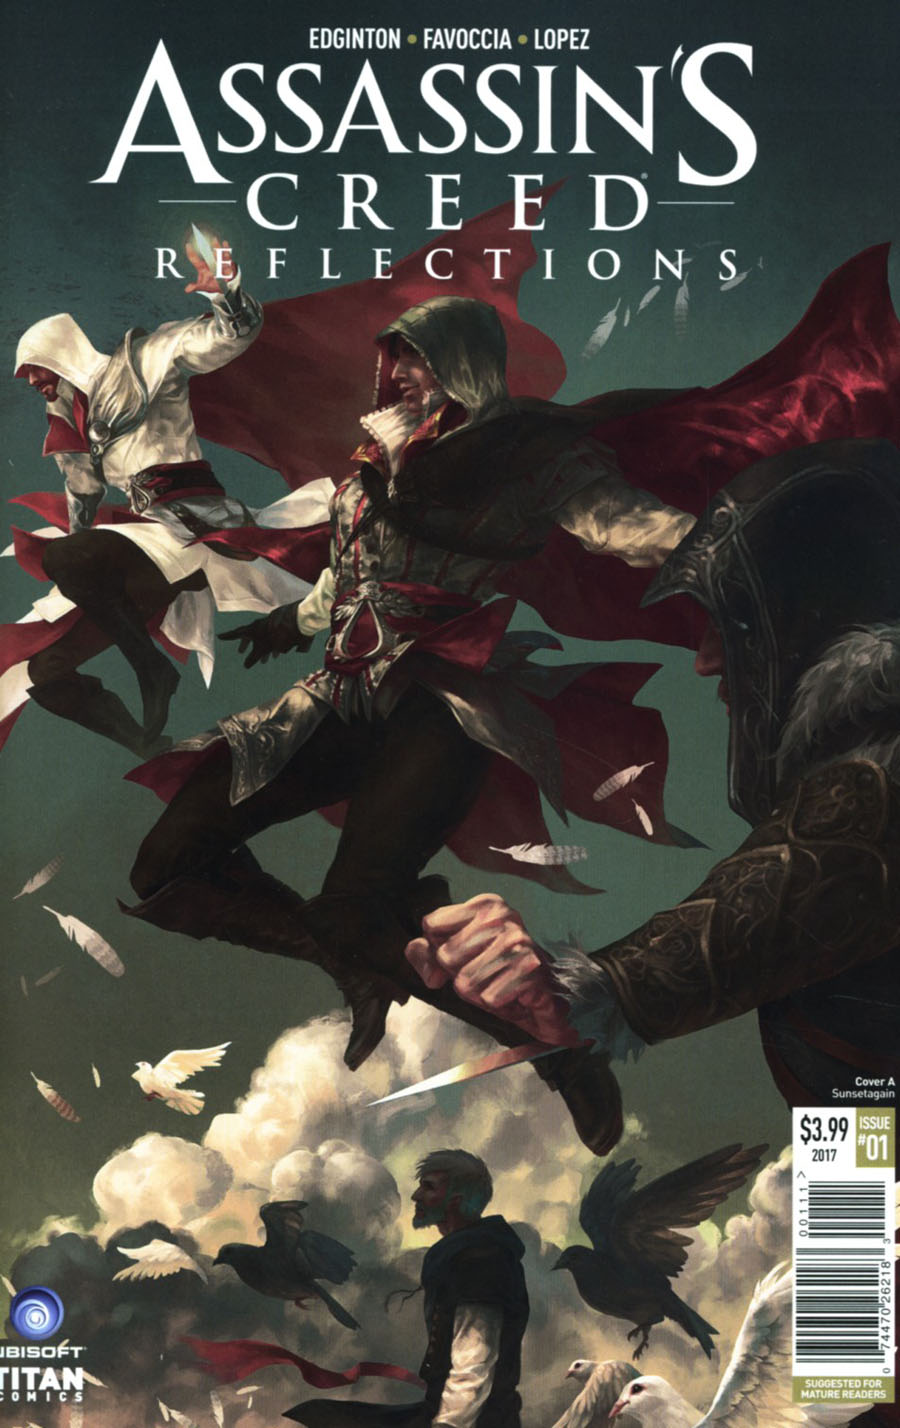 Assassins Creed Reflections #1 Cover A Regular Sunsetagain Cover